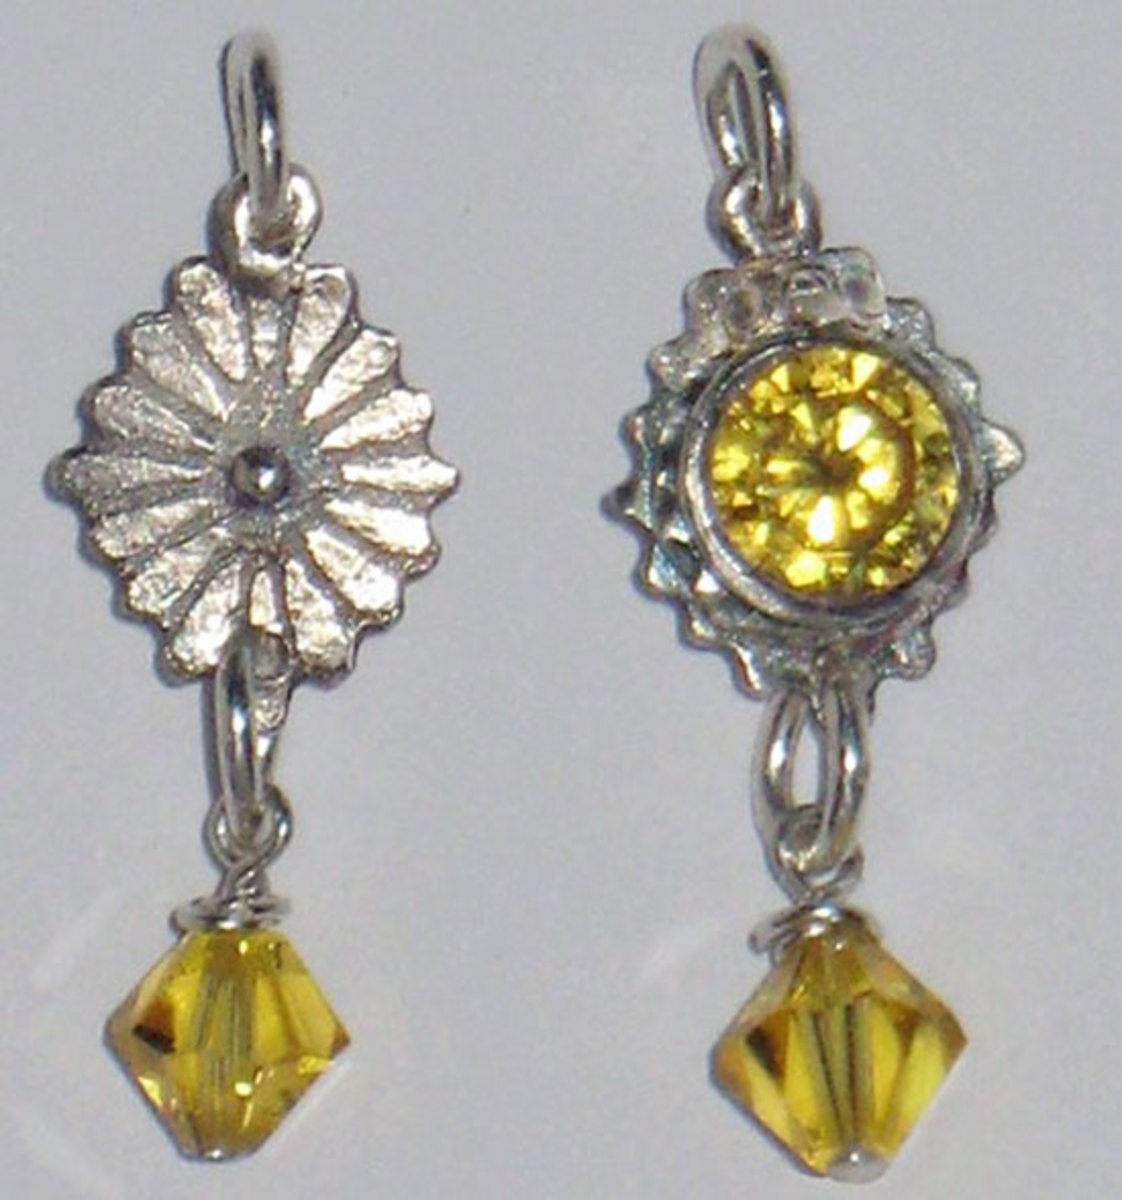 Fine silver charm (both sides shown) from metal clay, set with a tall citrine CZ and embellished with a crystal bead drop